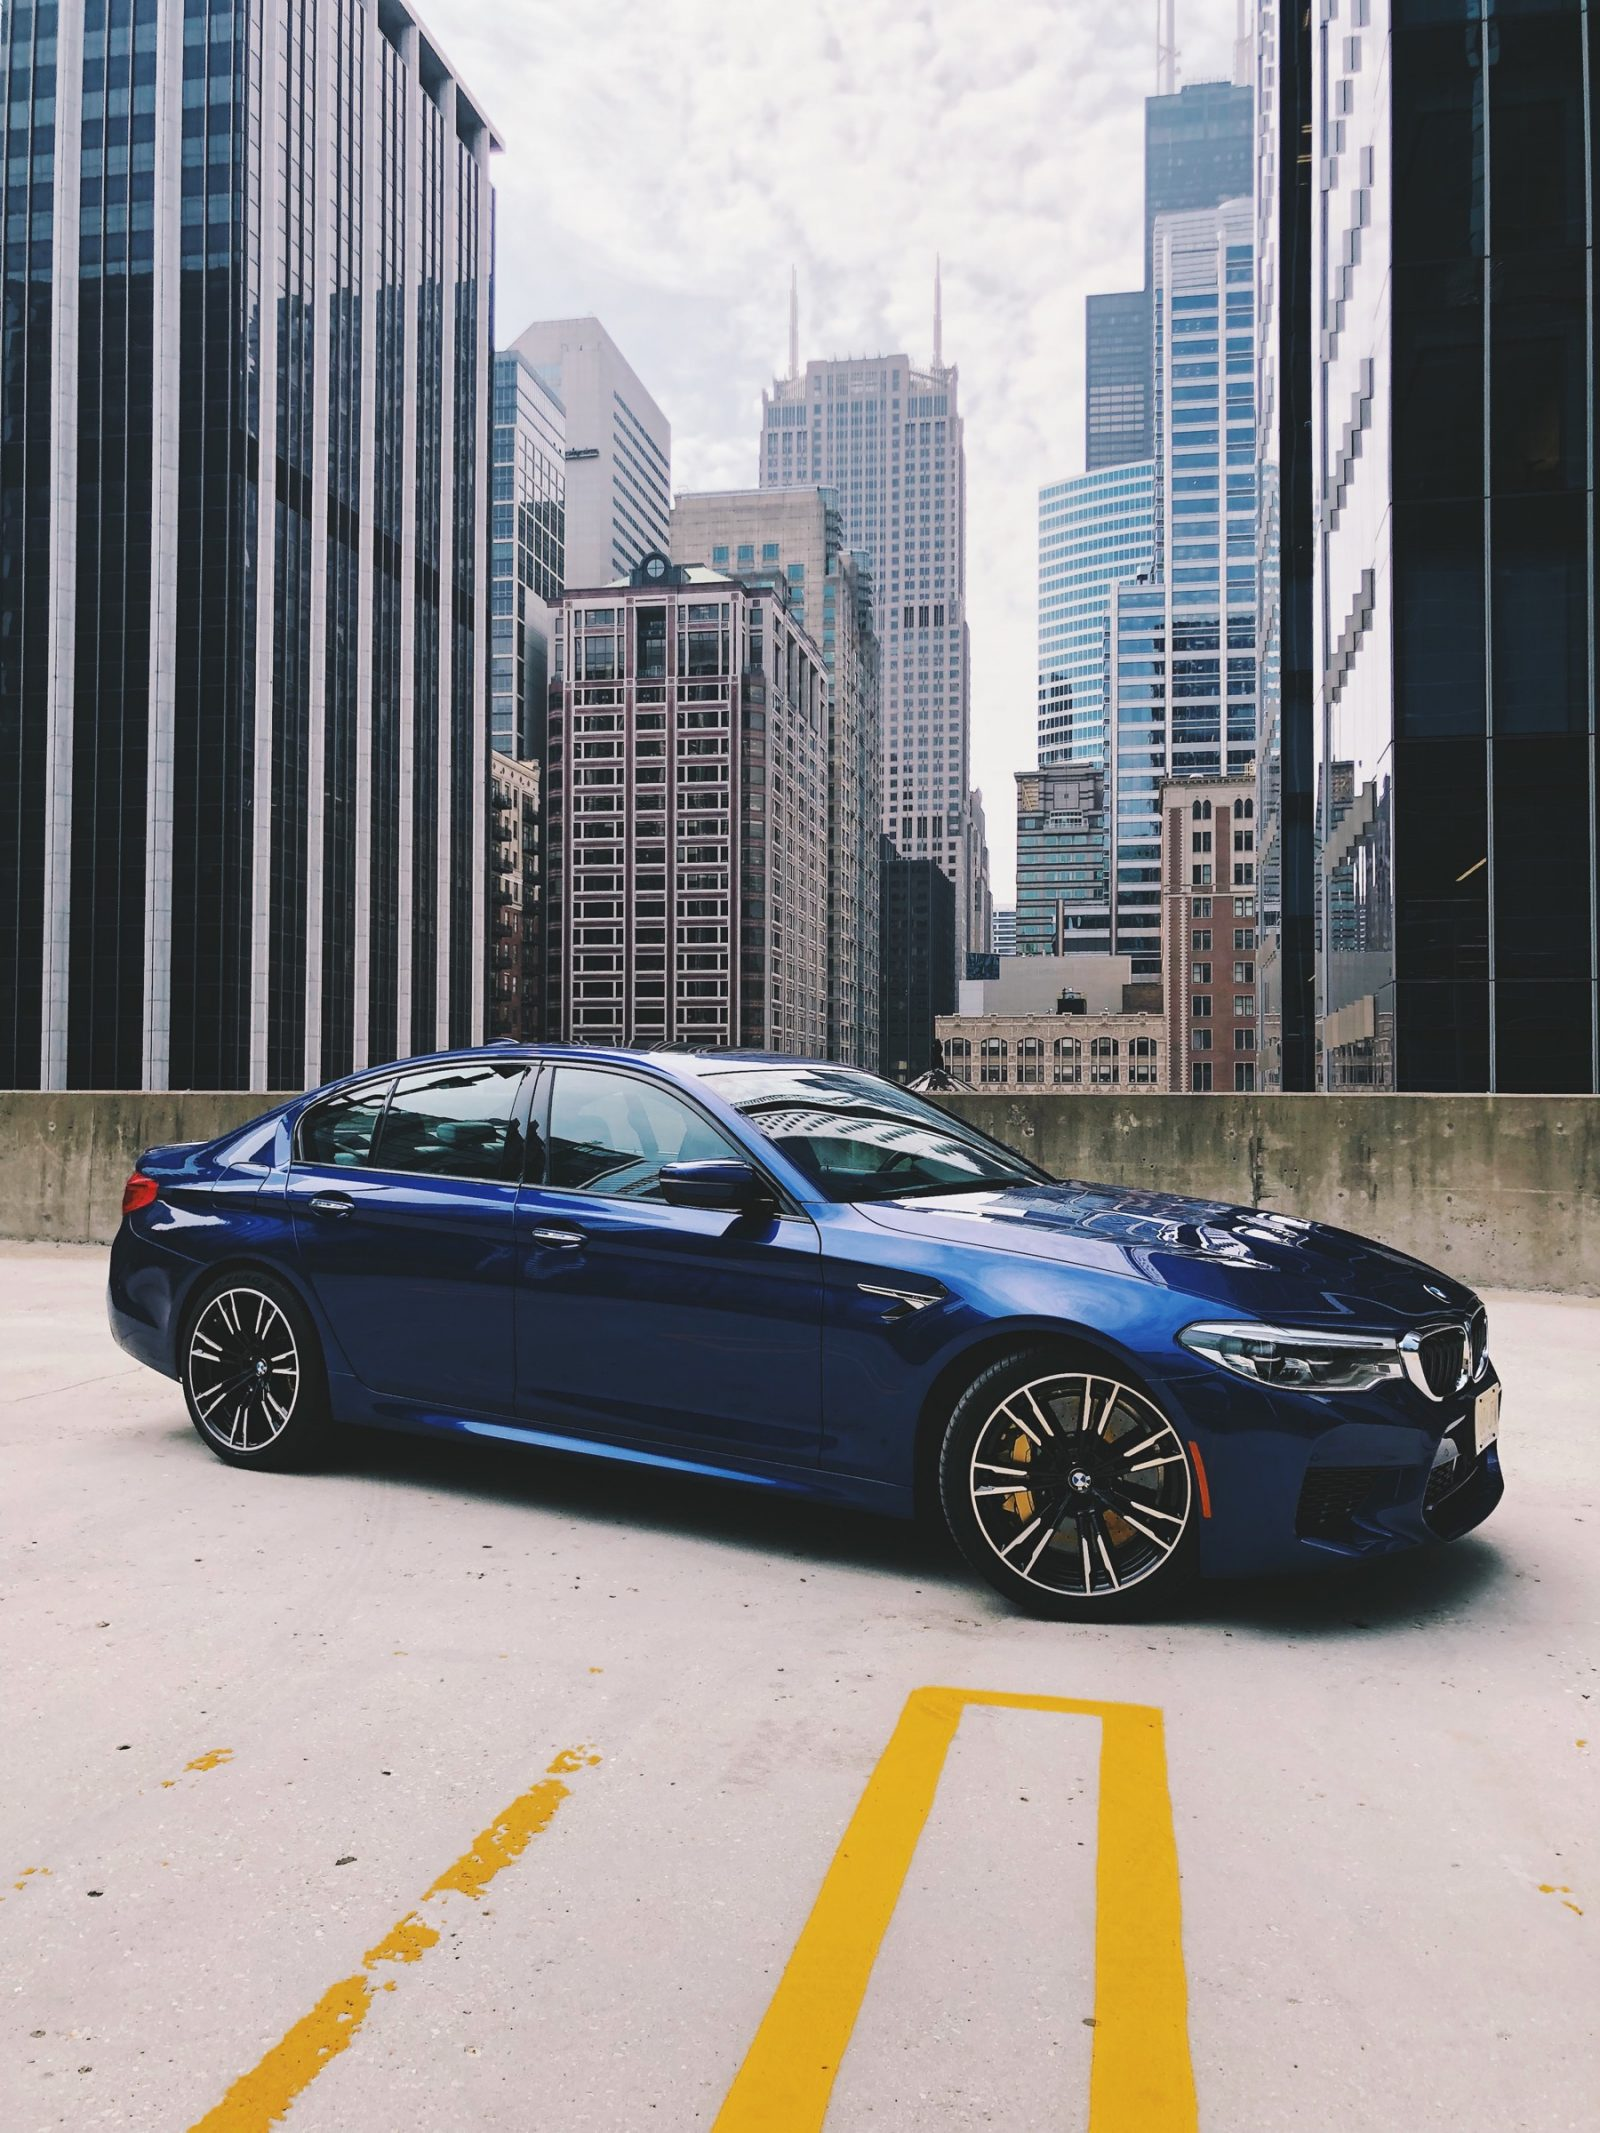 Bmw M5 Review One Week In The Fastest Most Capable M5 Of All Time